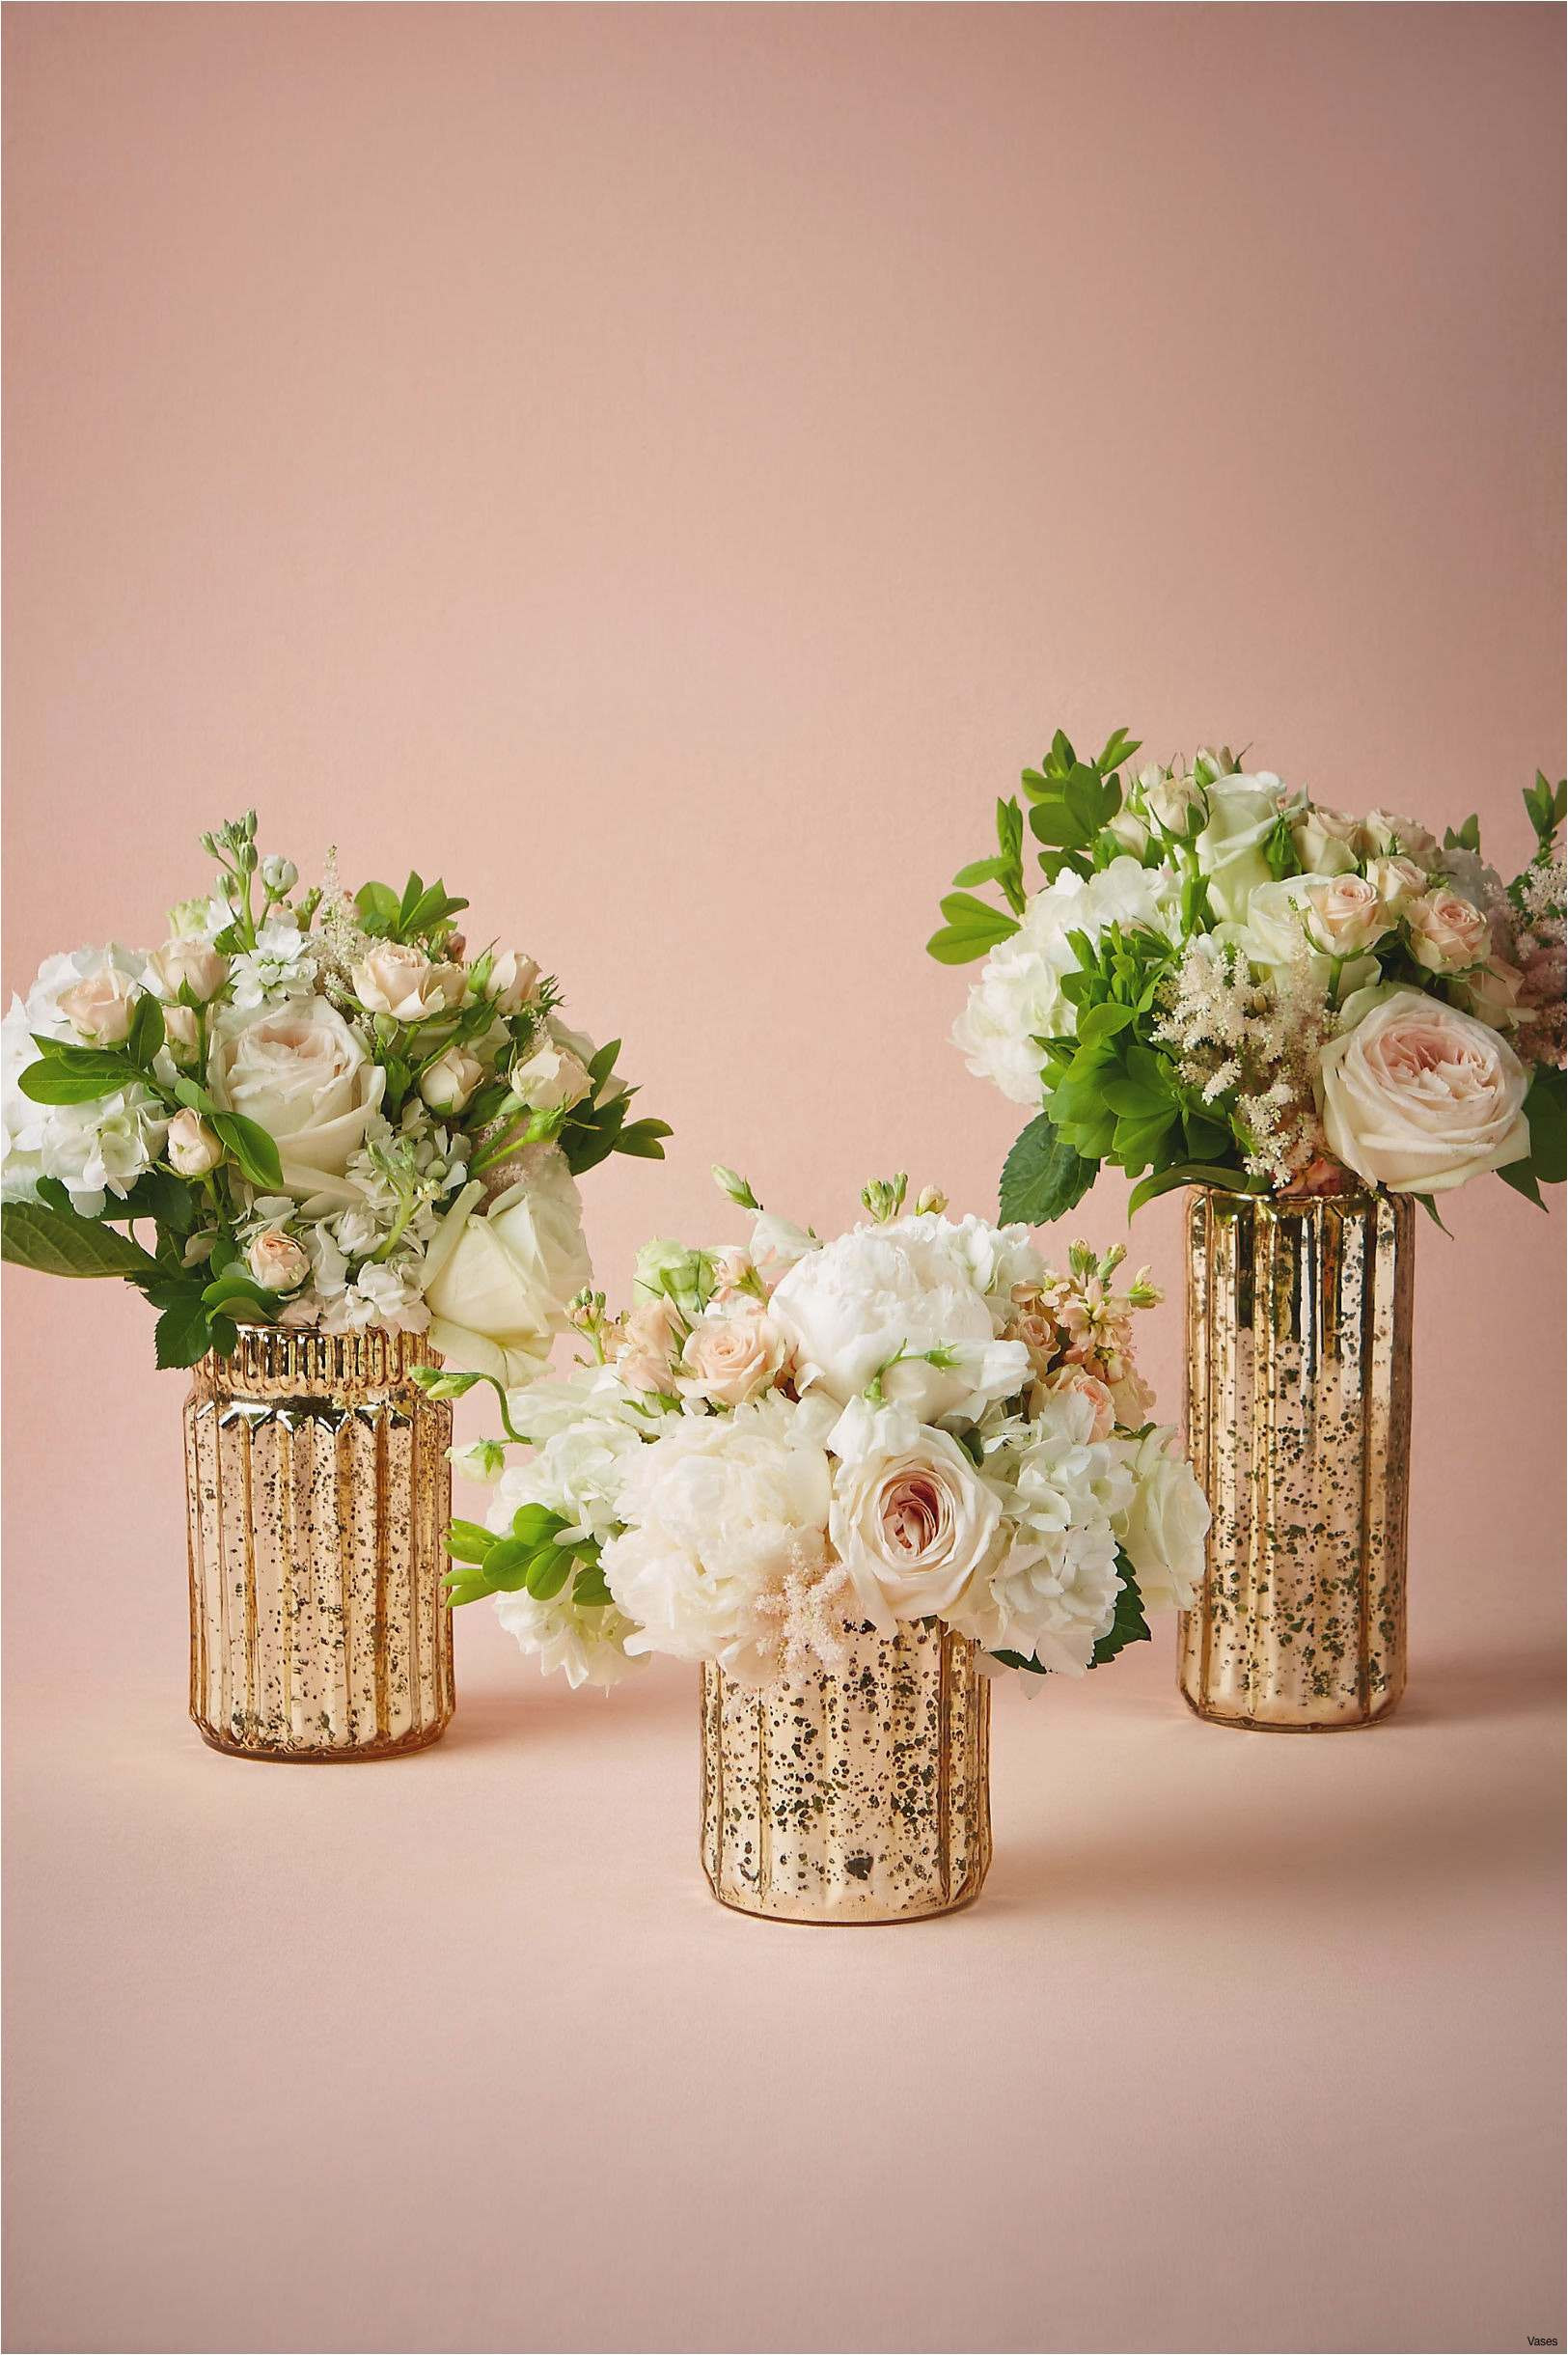 large decorative clear glass vases of wedding flower decoration ideas 6625 1h vases mercury glass cylinder inside wedding flower decoration photos 6625 1h vases mercury glass cylinder vasesi 0d australia scheme collection